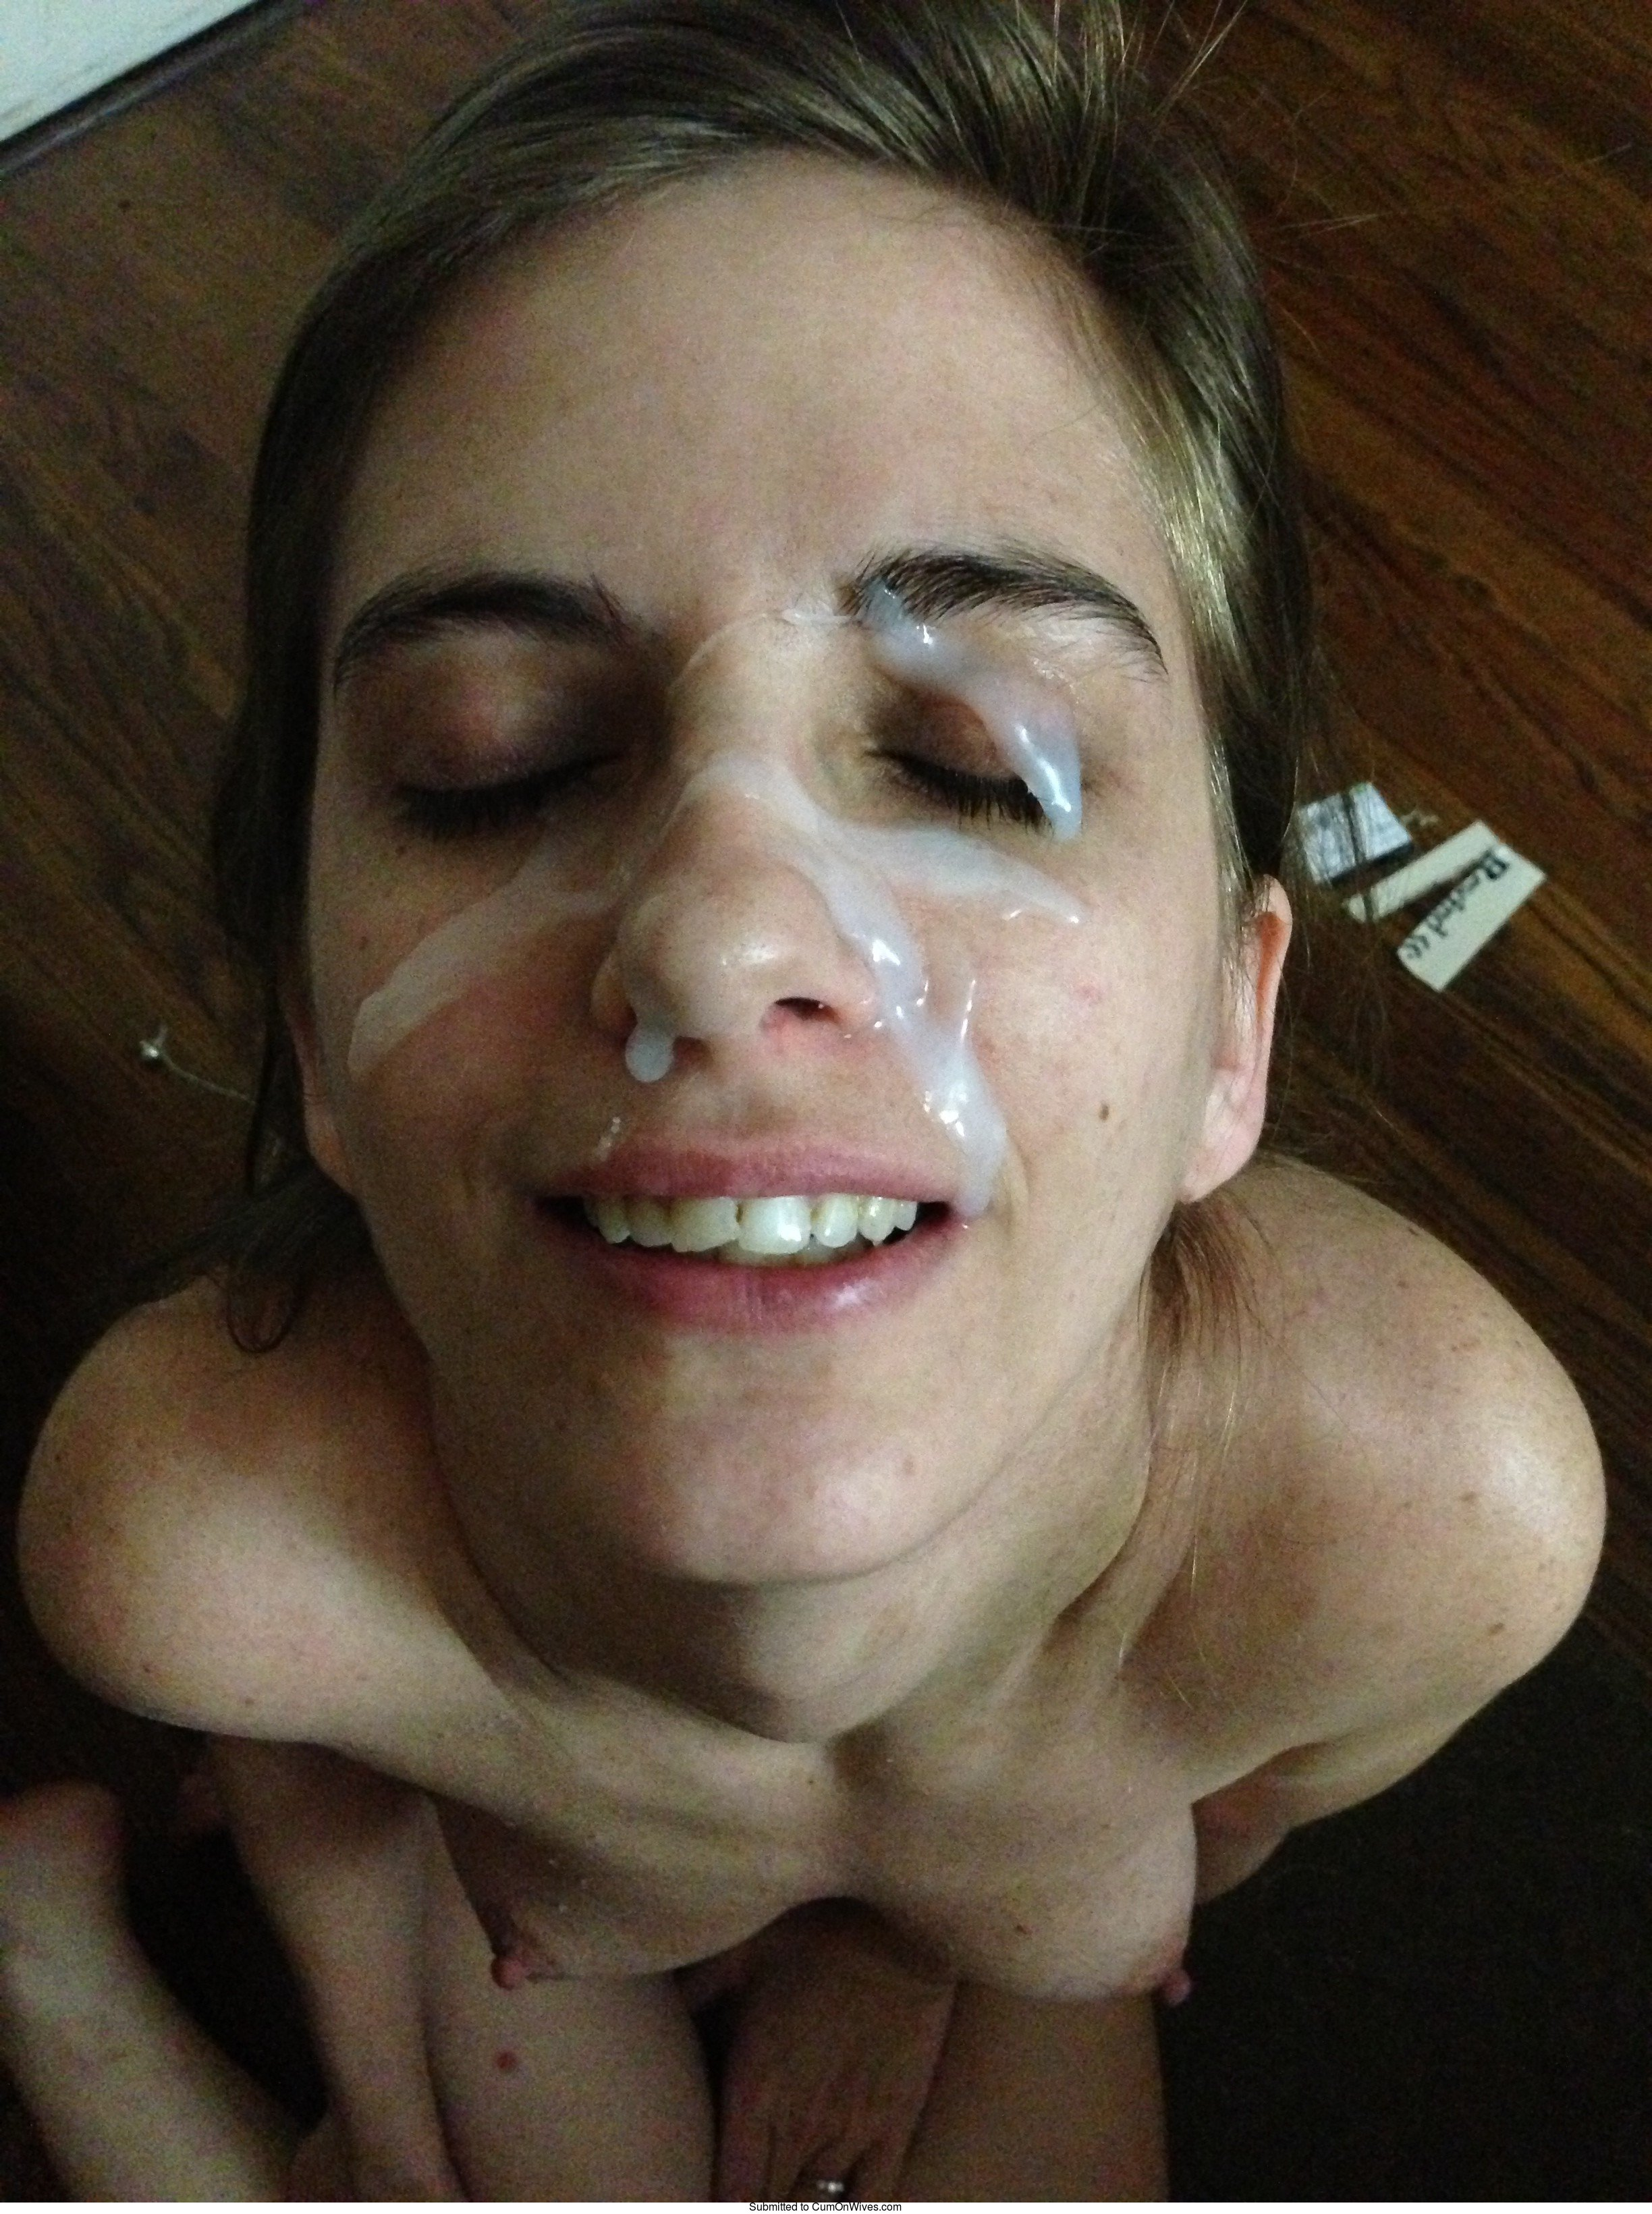 Bucket of cum on face, mile eastern girls naked